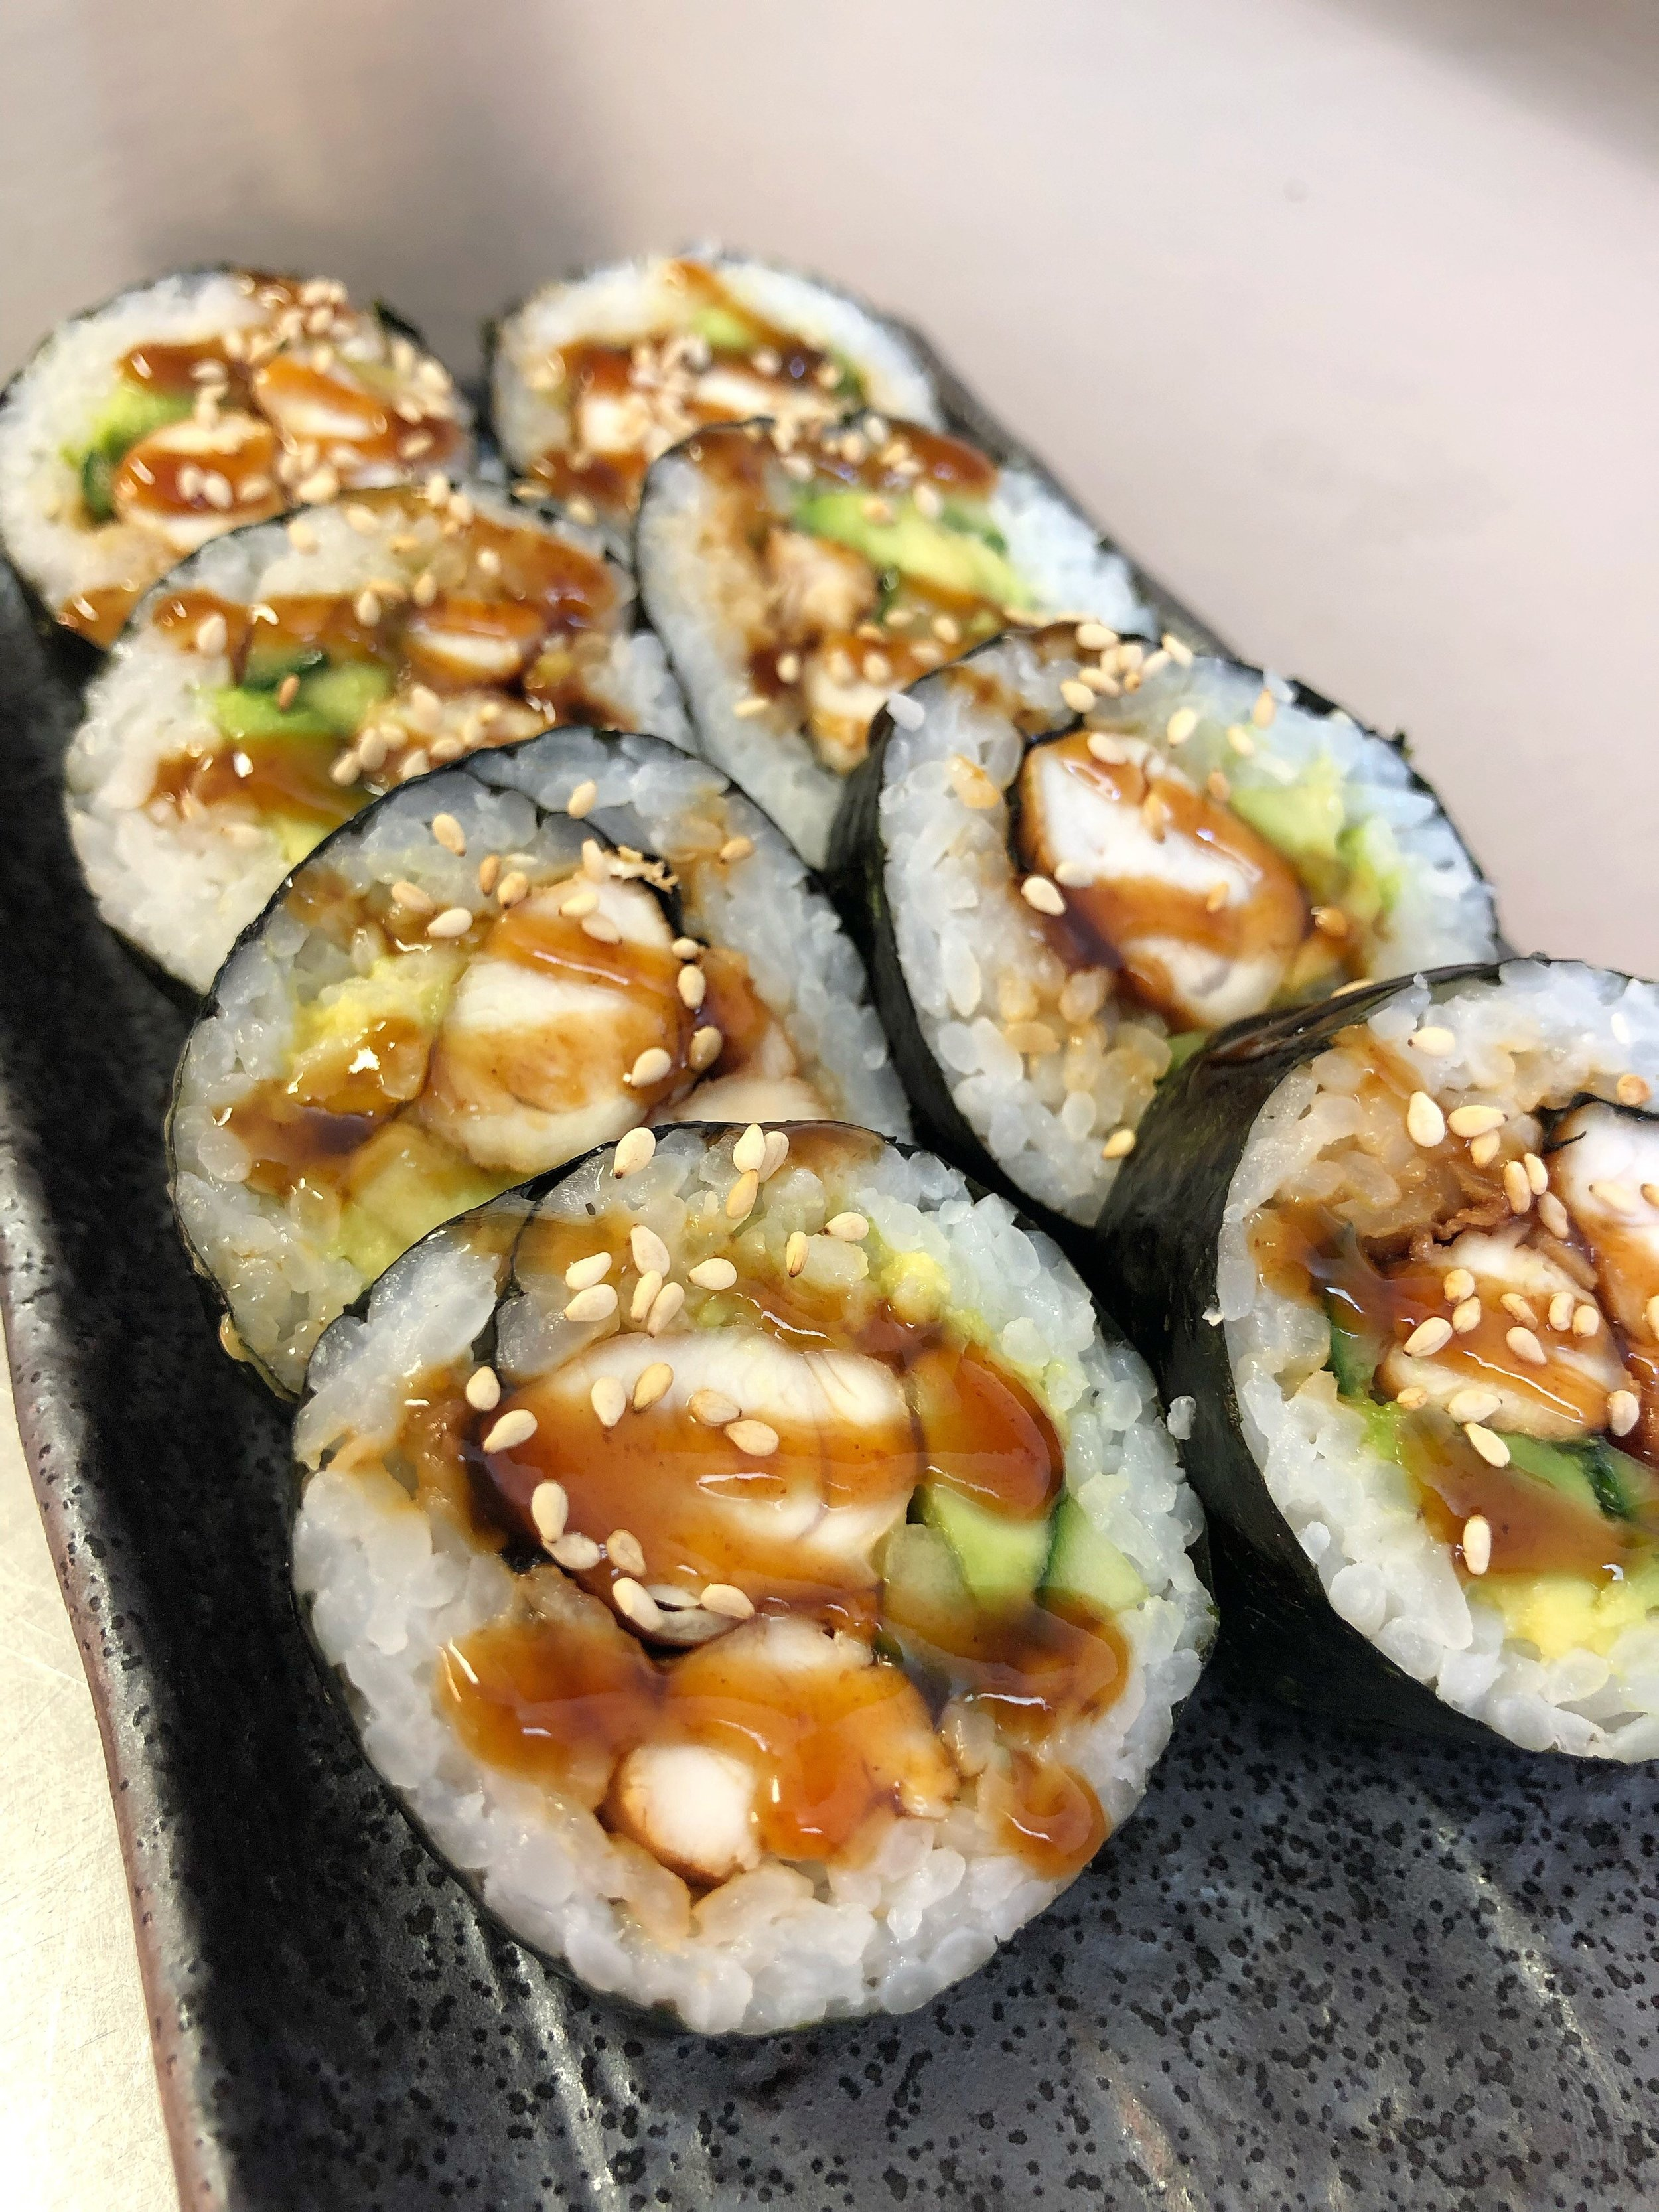 Chicken Teriyaki Futomaki - £6.50